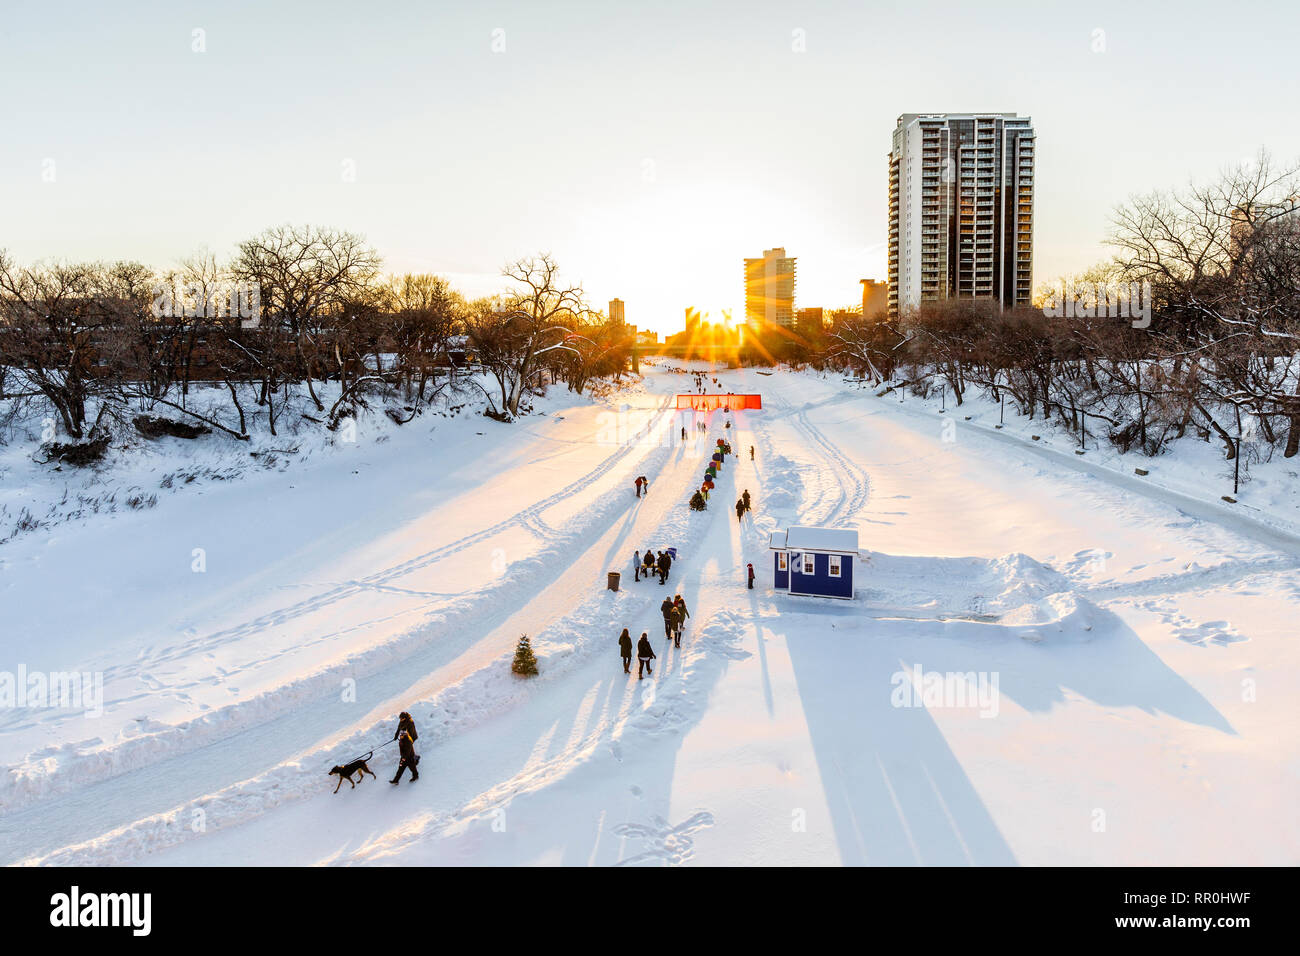 Walkers, hikers and ice skaters on the Assiniboine River Trail at sunset, part of the Red River Mutual Trail, The Forks, Winnipeg, Manitoba, Canada. - Stock Image